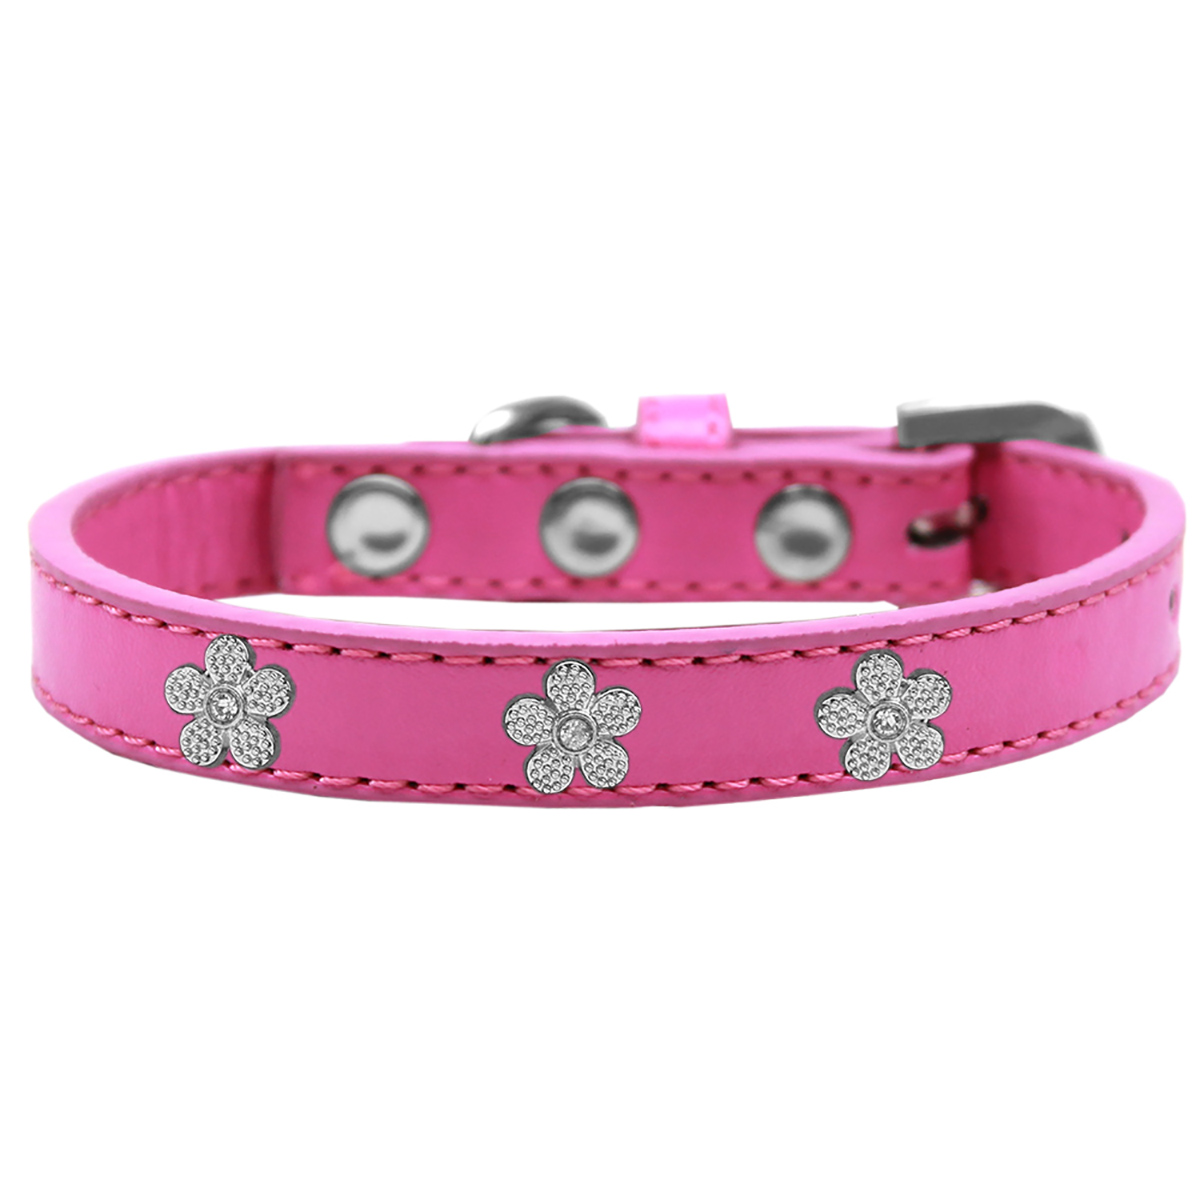 Silver Flower Widget Dog Collar - Bright Pink